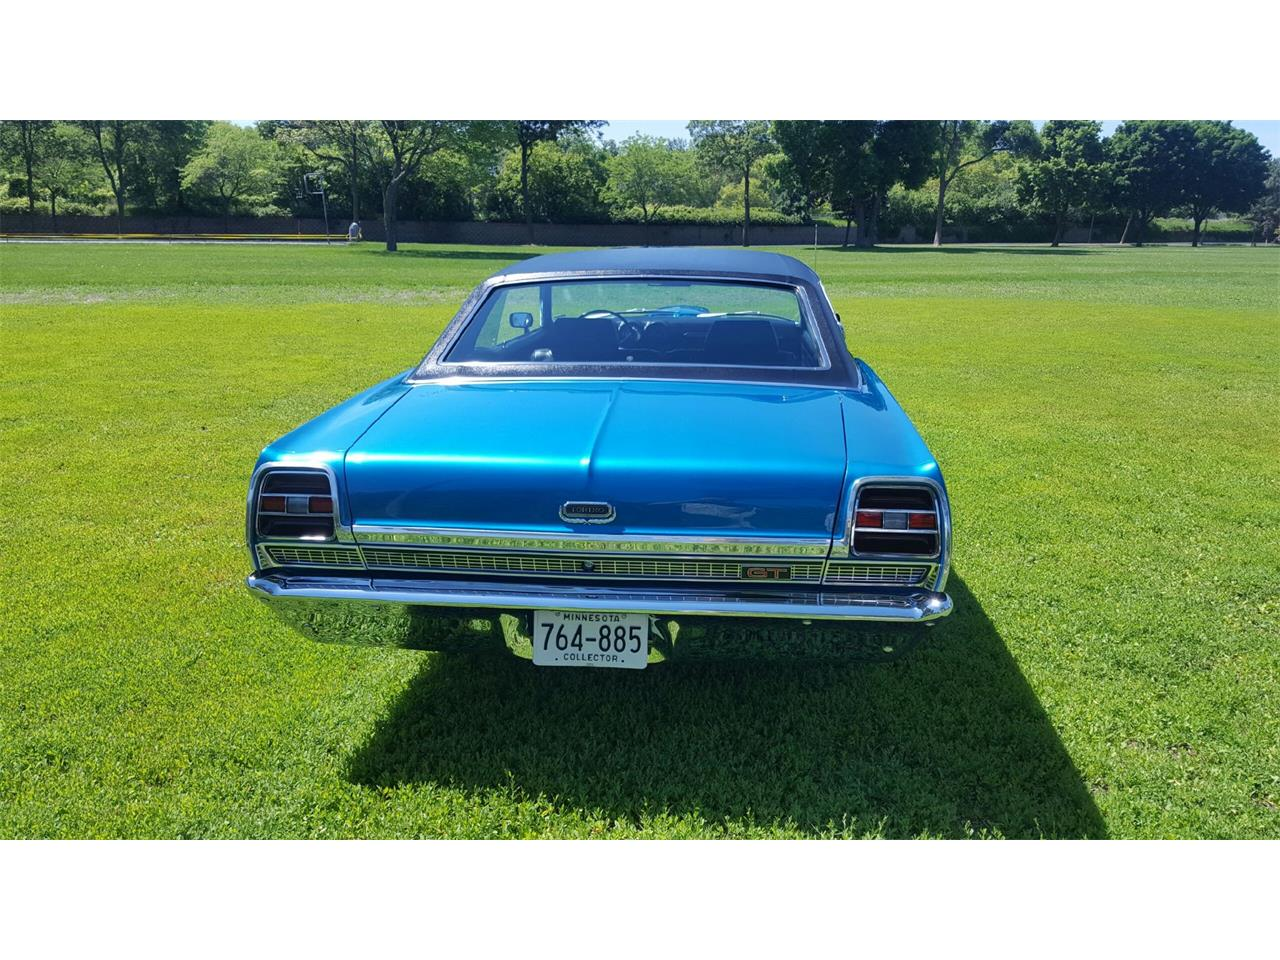 Large Picture of '69 Ford Torino located in Minnesota Offered by Classic Rides and Rods - L8I4